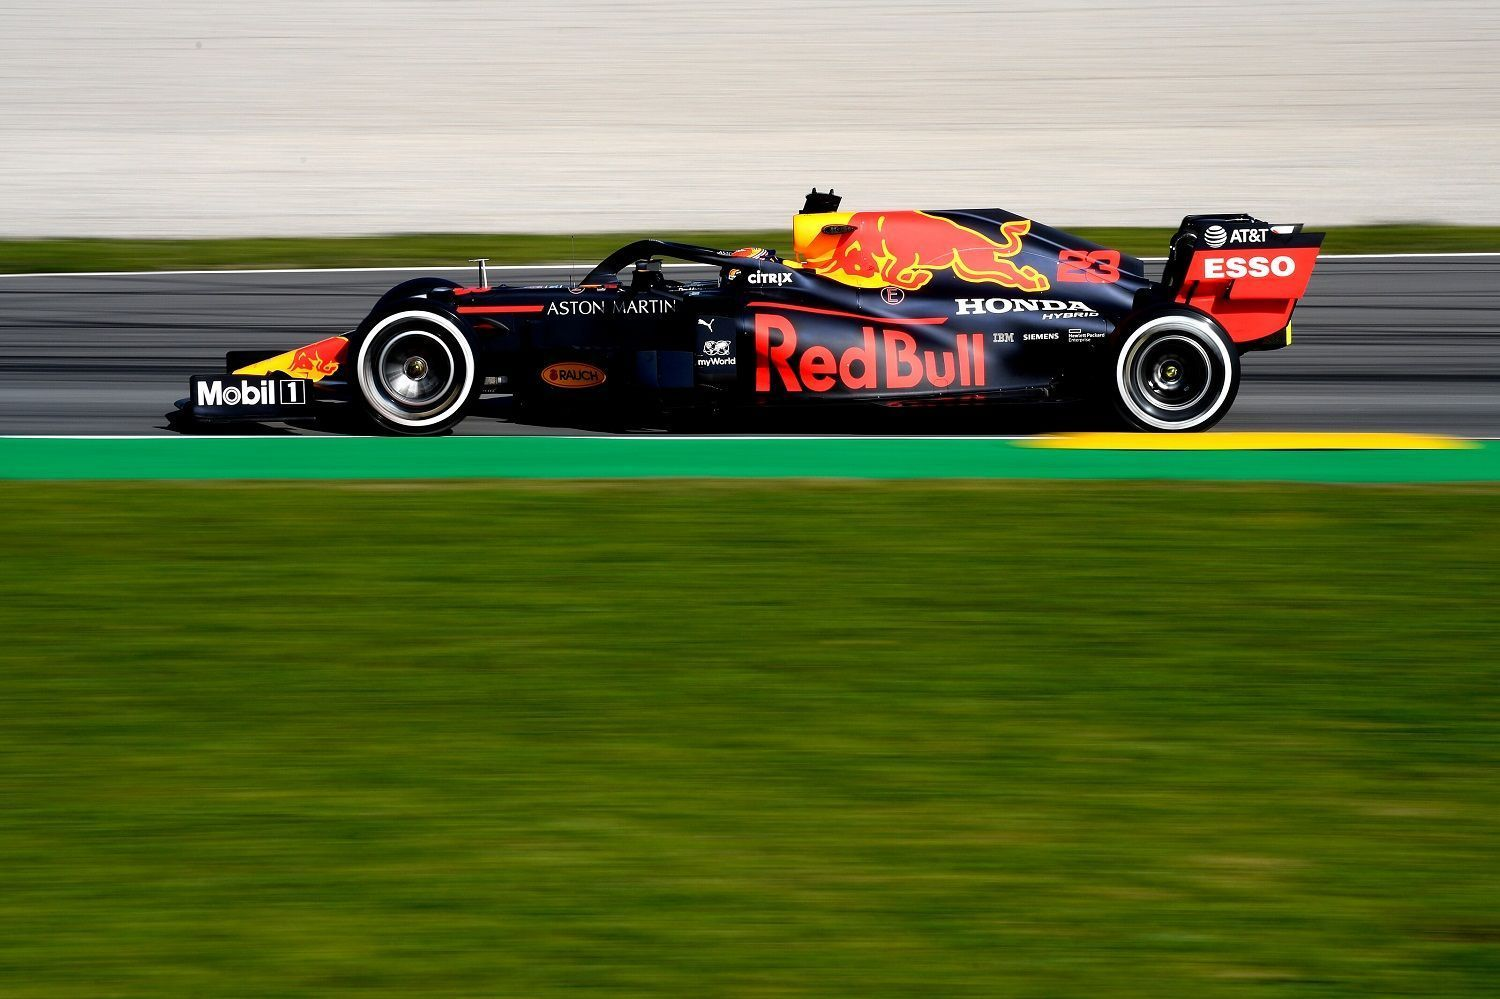 Honda credits 'excellent relationship' with Red Bull for good results in F1